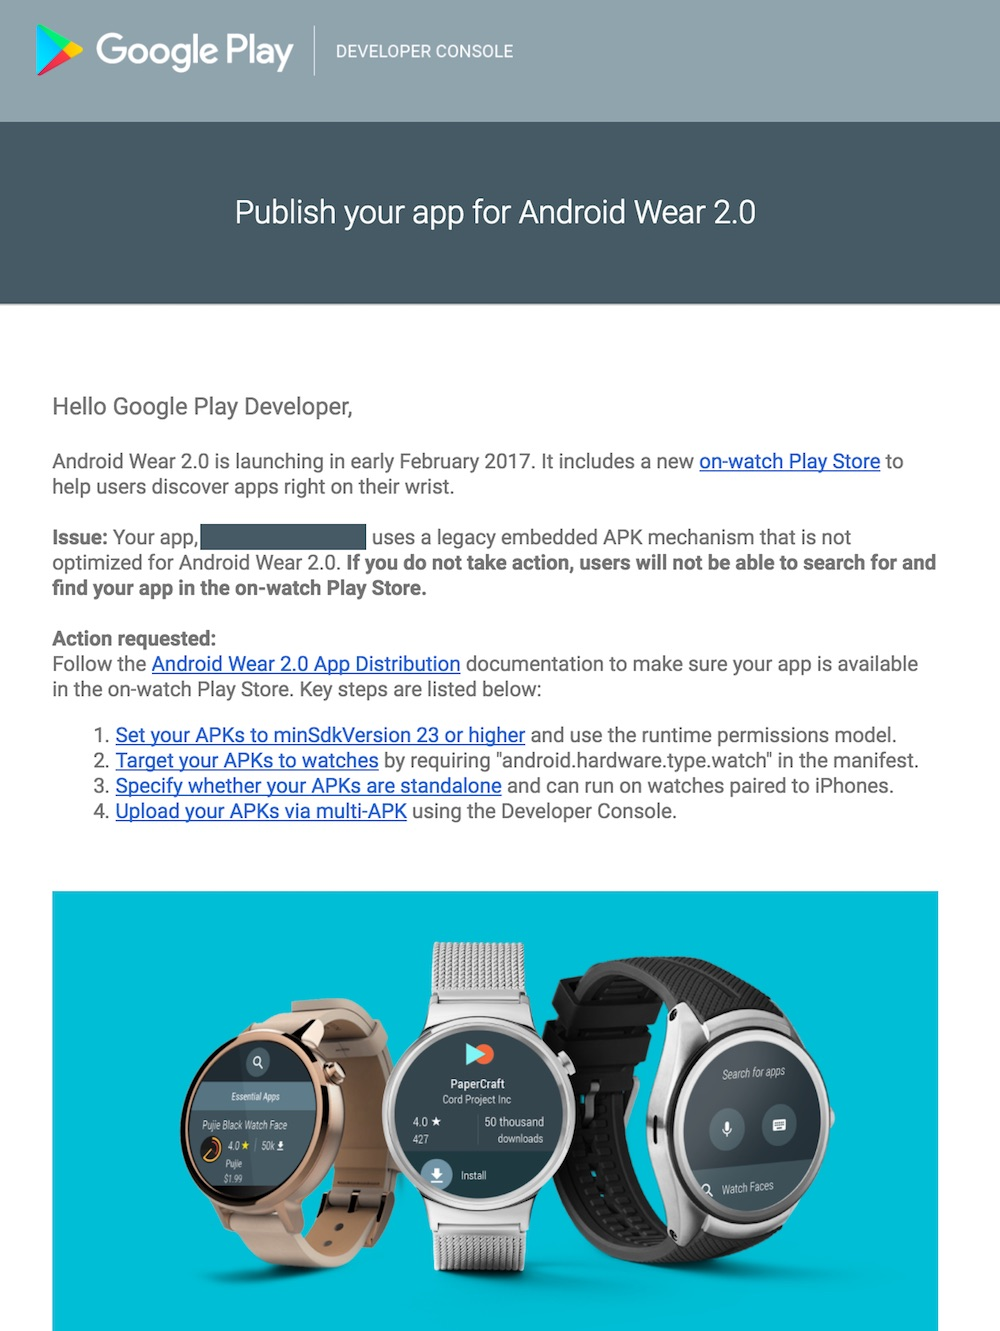 Android Wear 2.0 Launch in Early February 2017